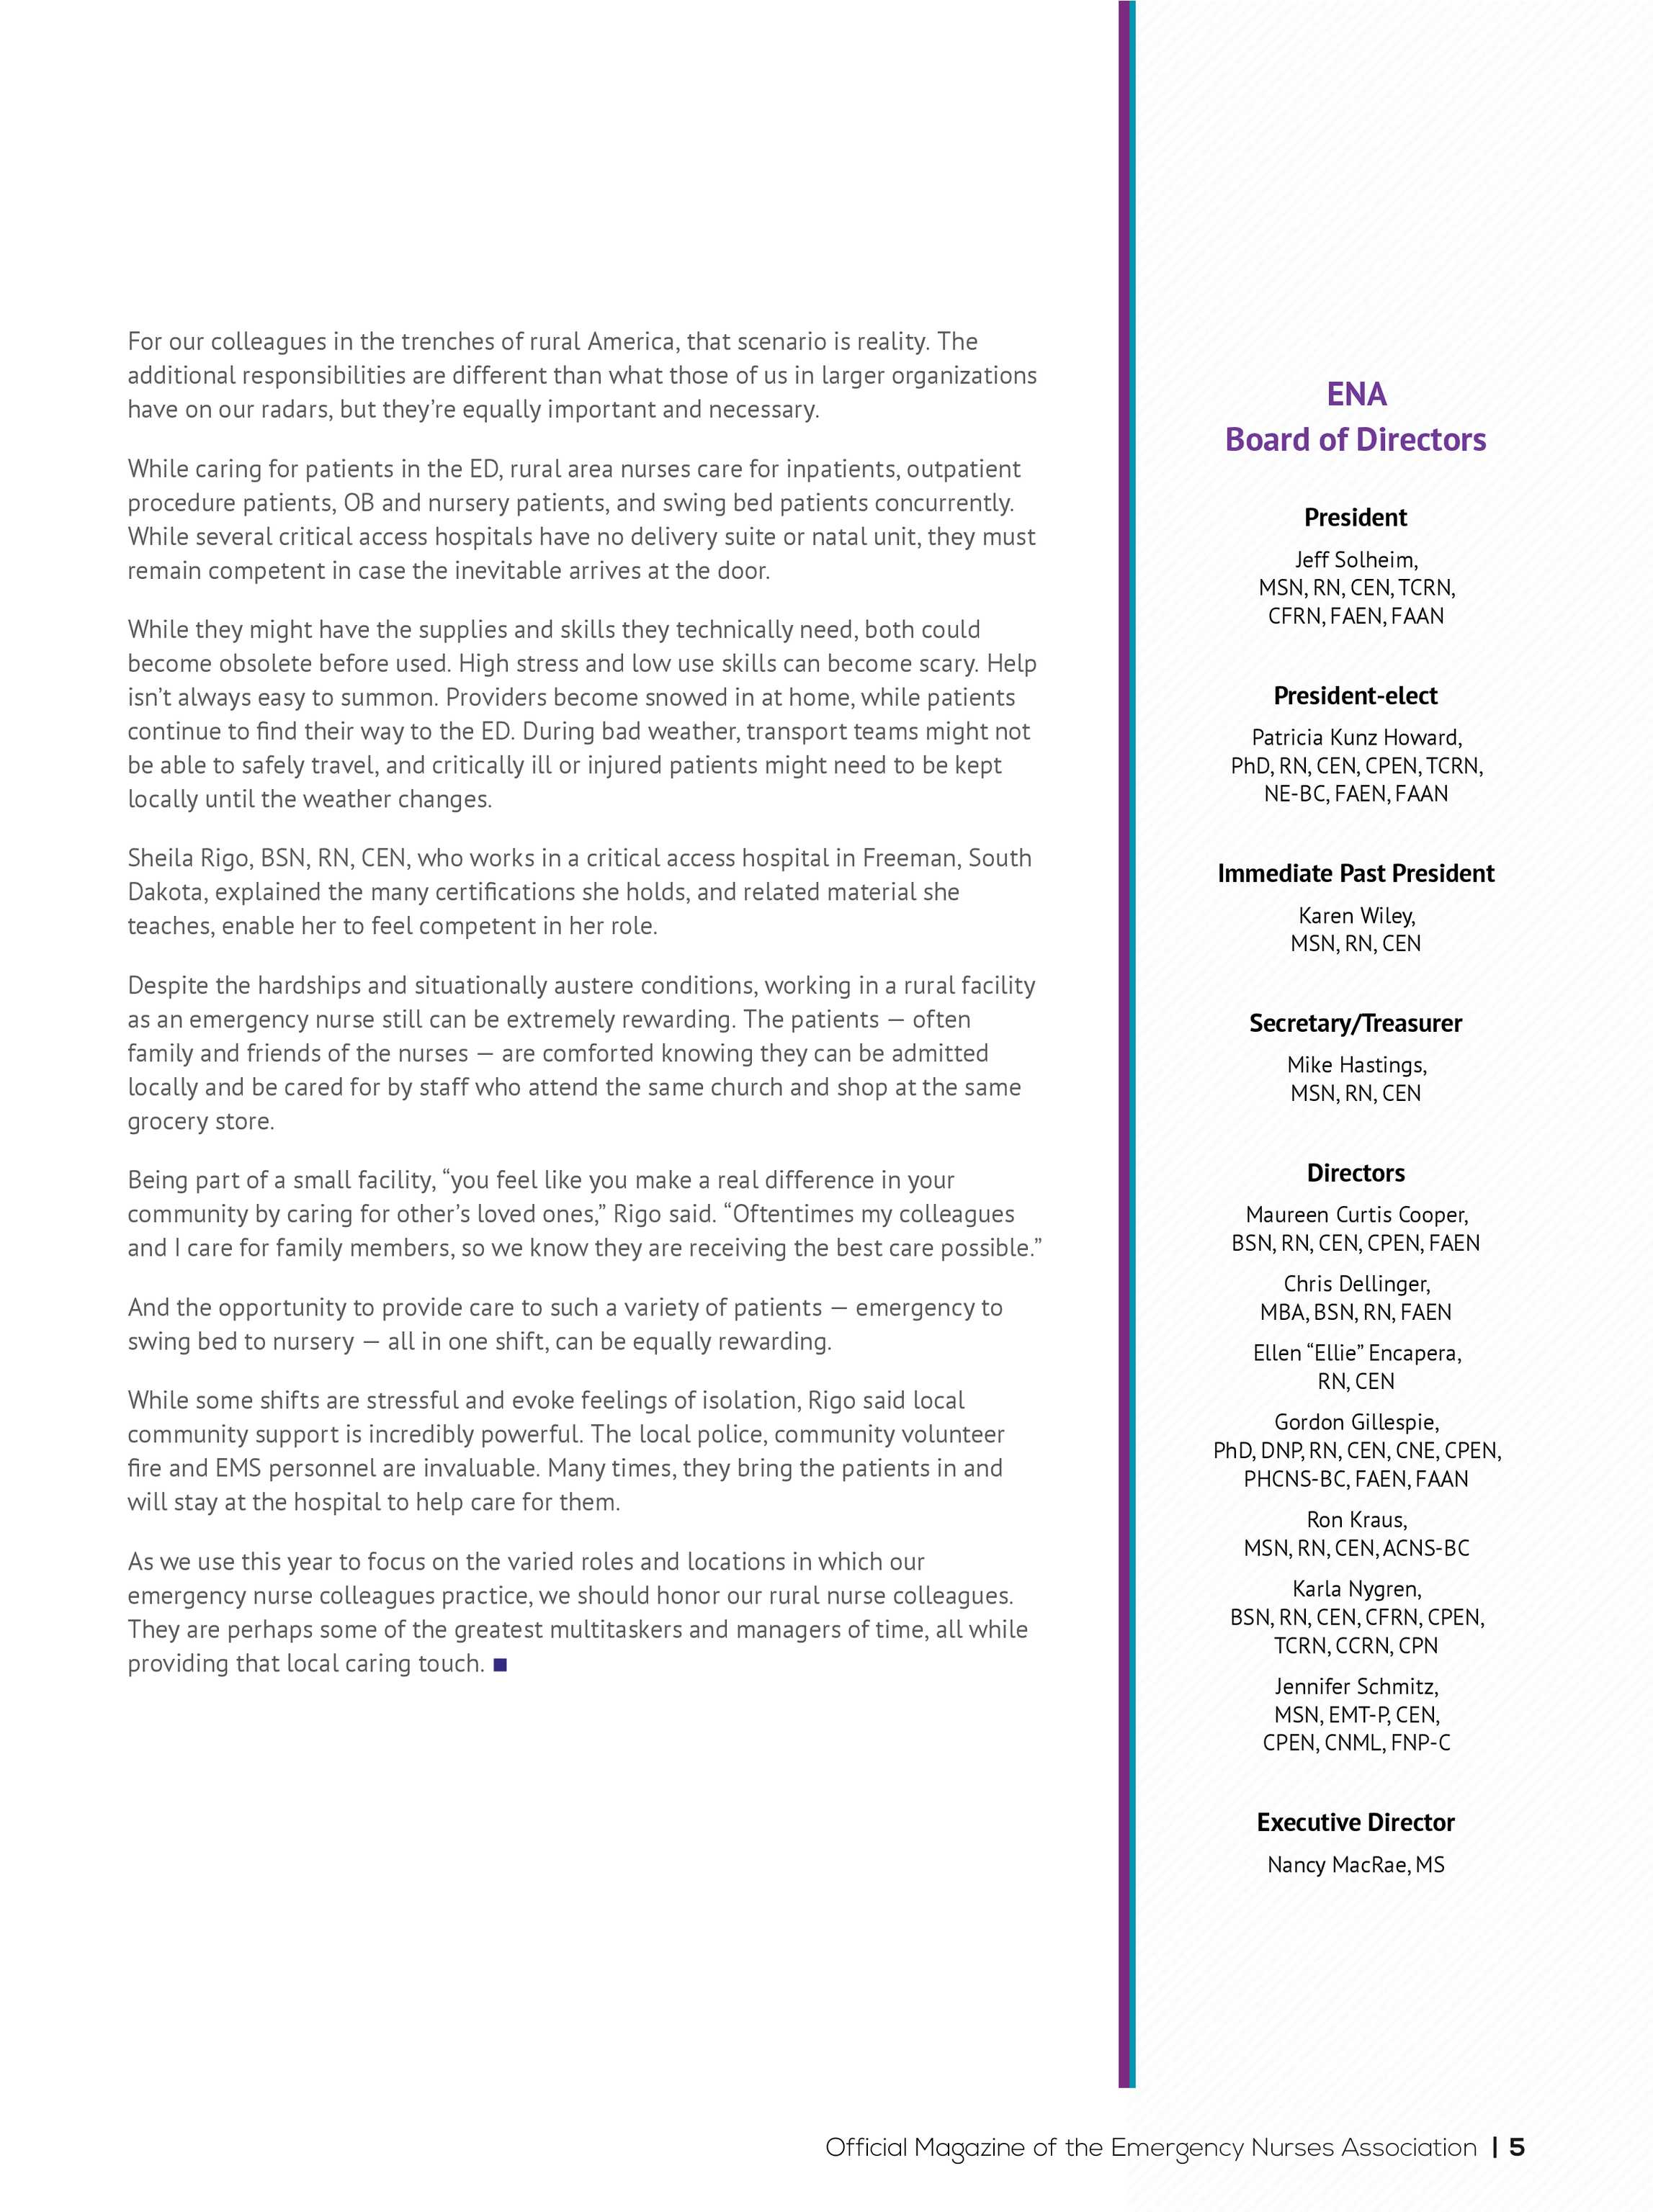 ENA Connection - March 2018 - page 5